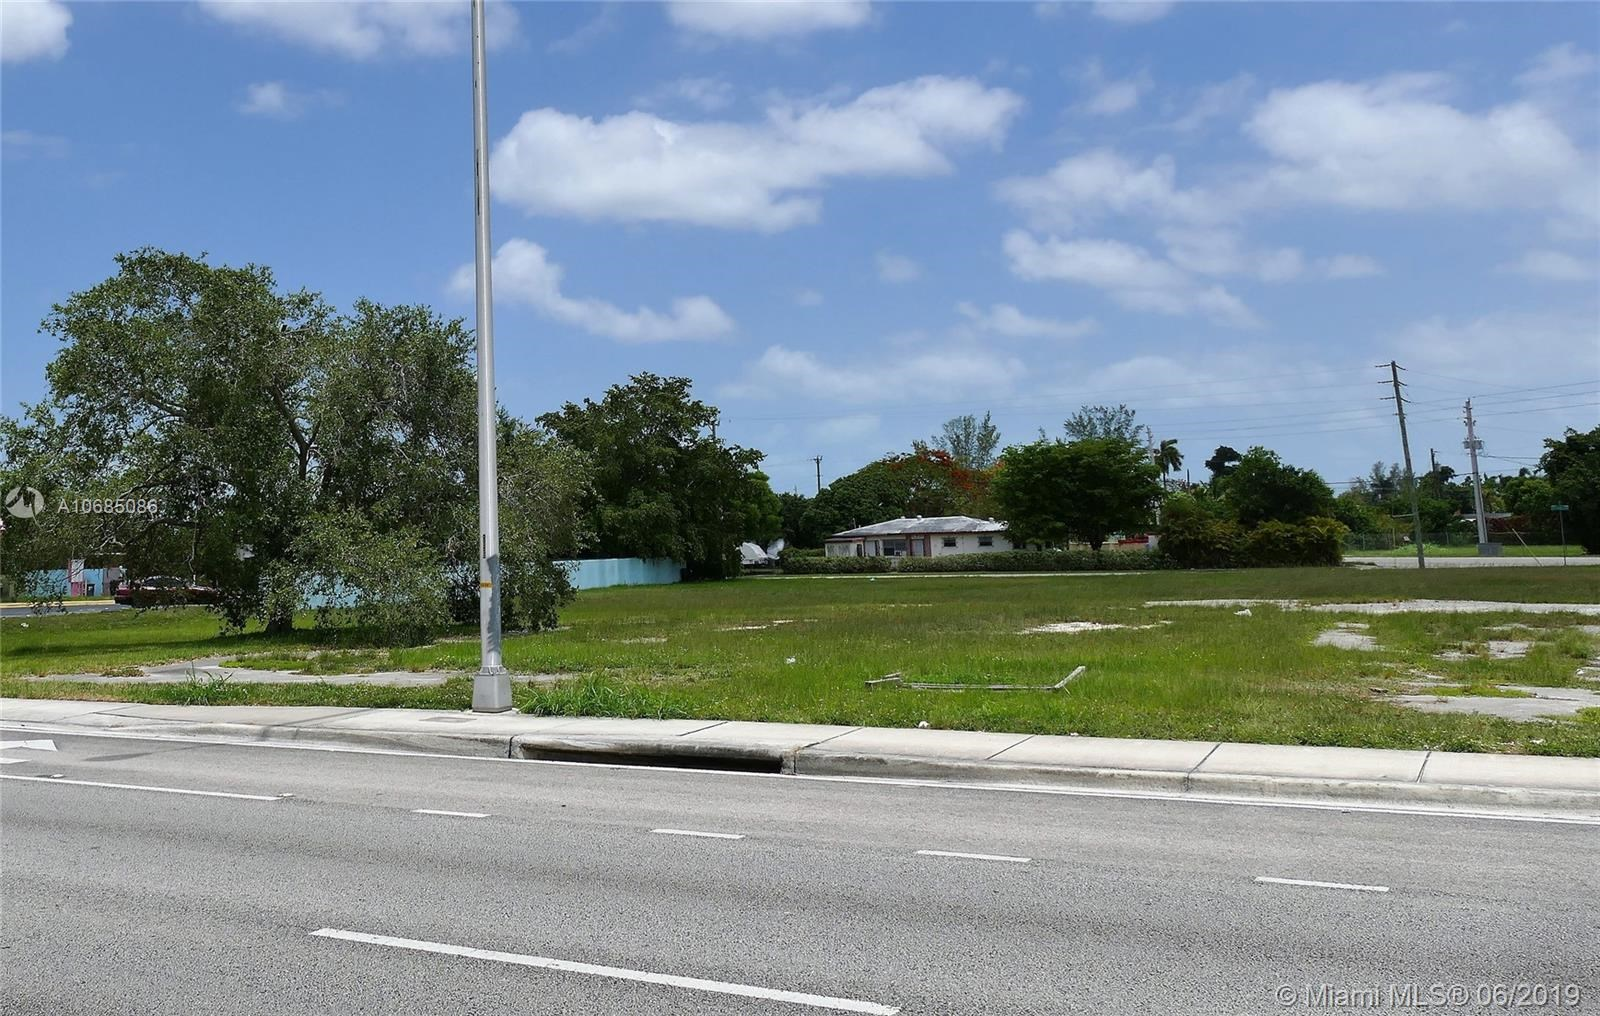 26755 S Dixie Hwy, Homestead, FL 33032